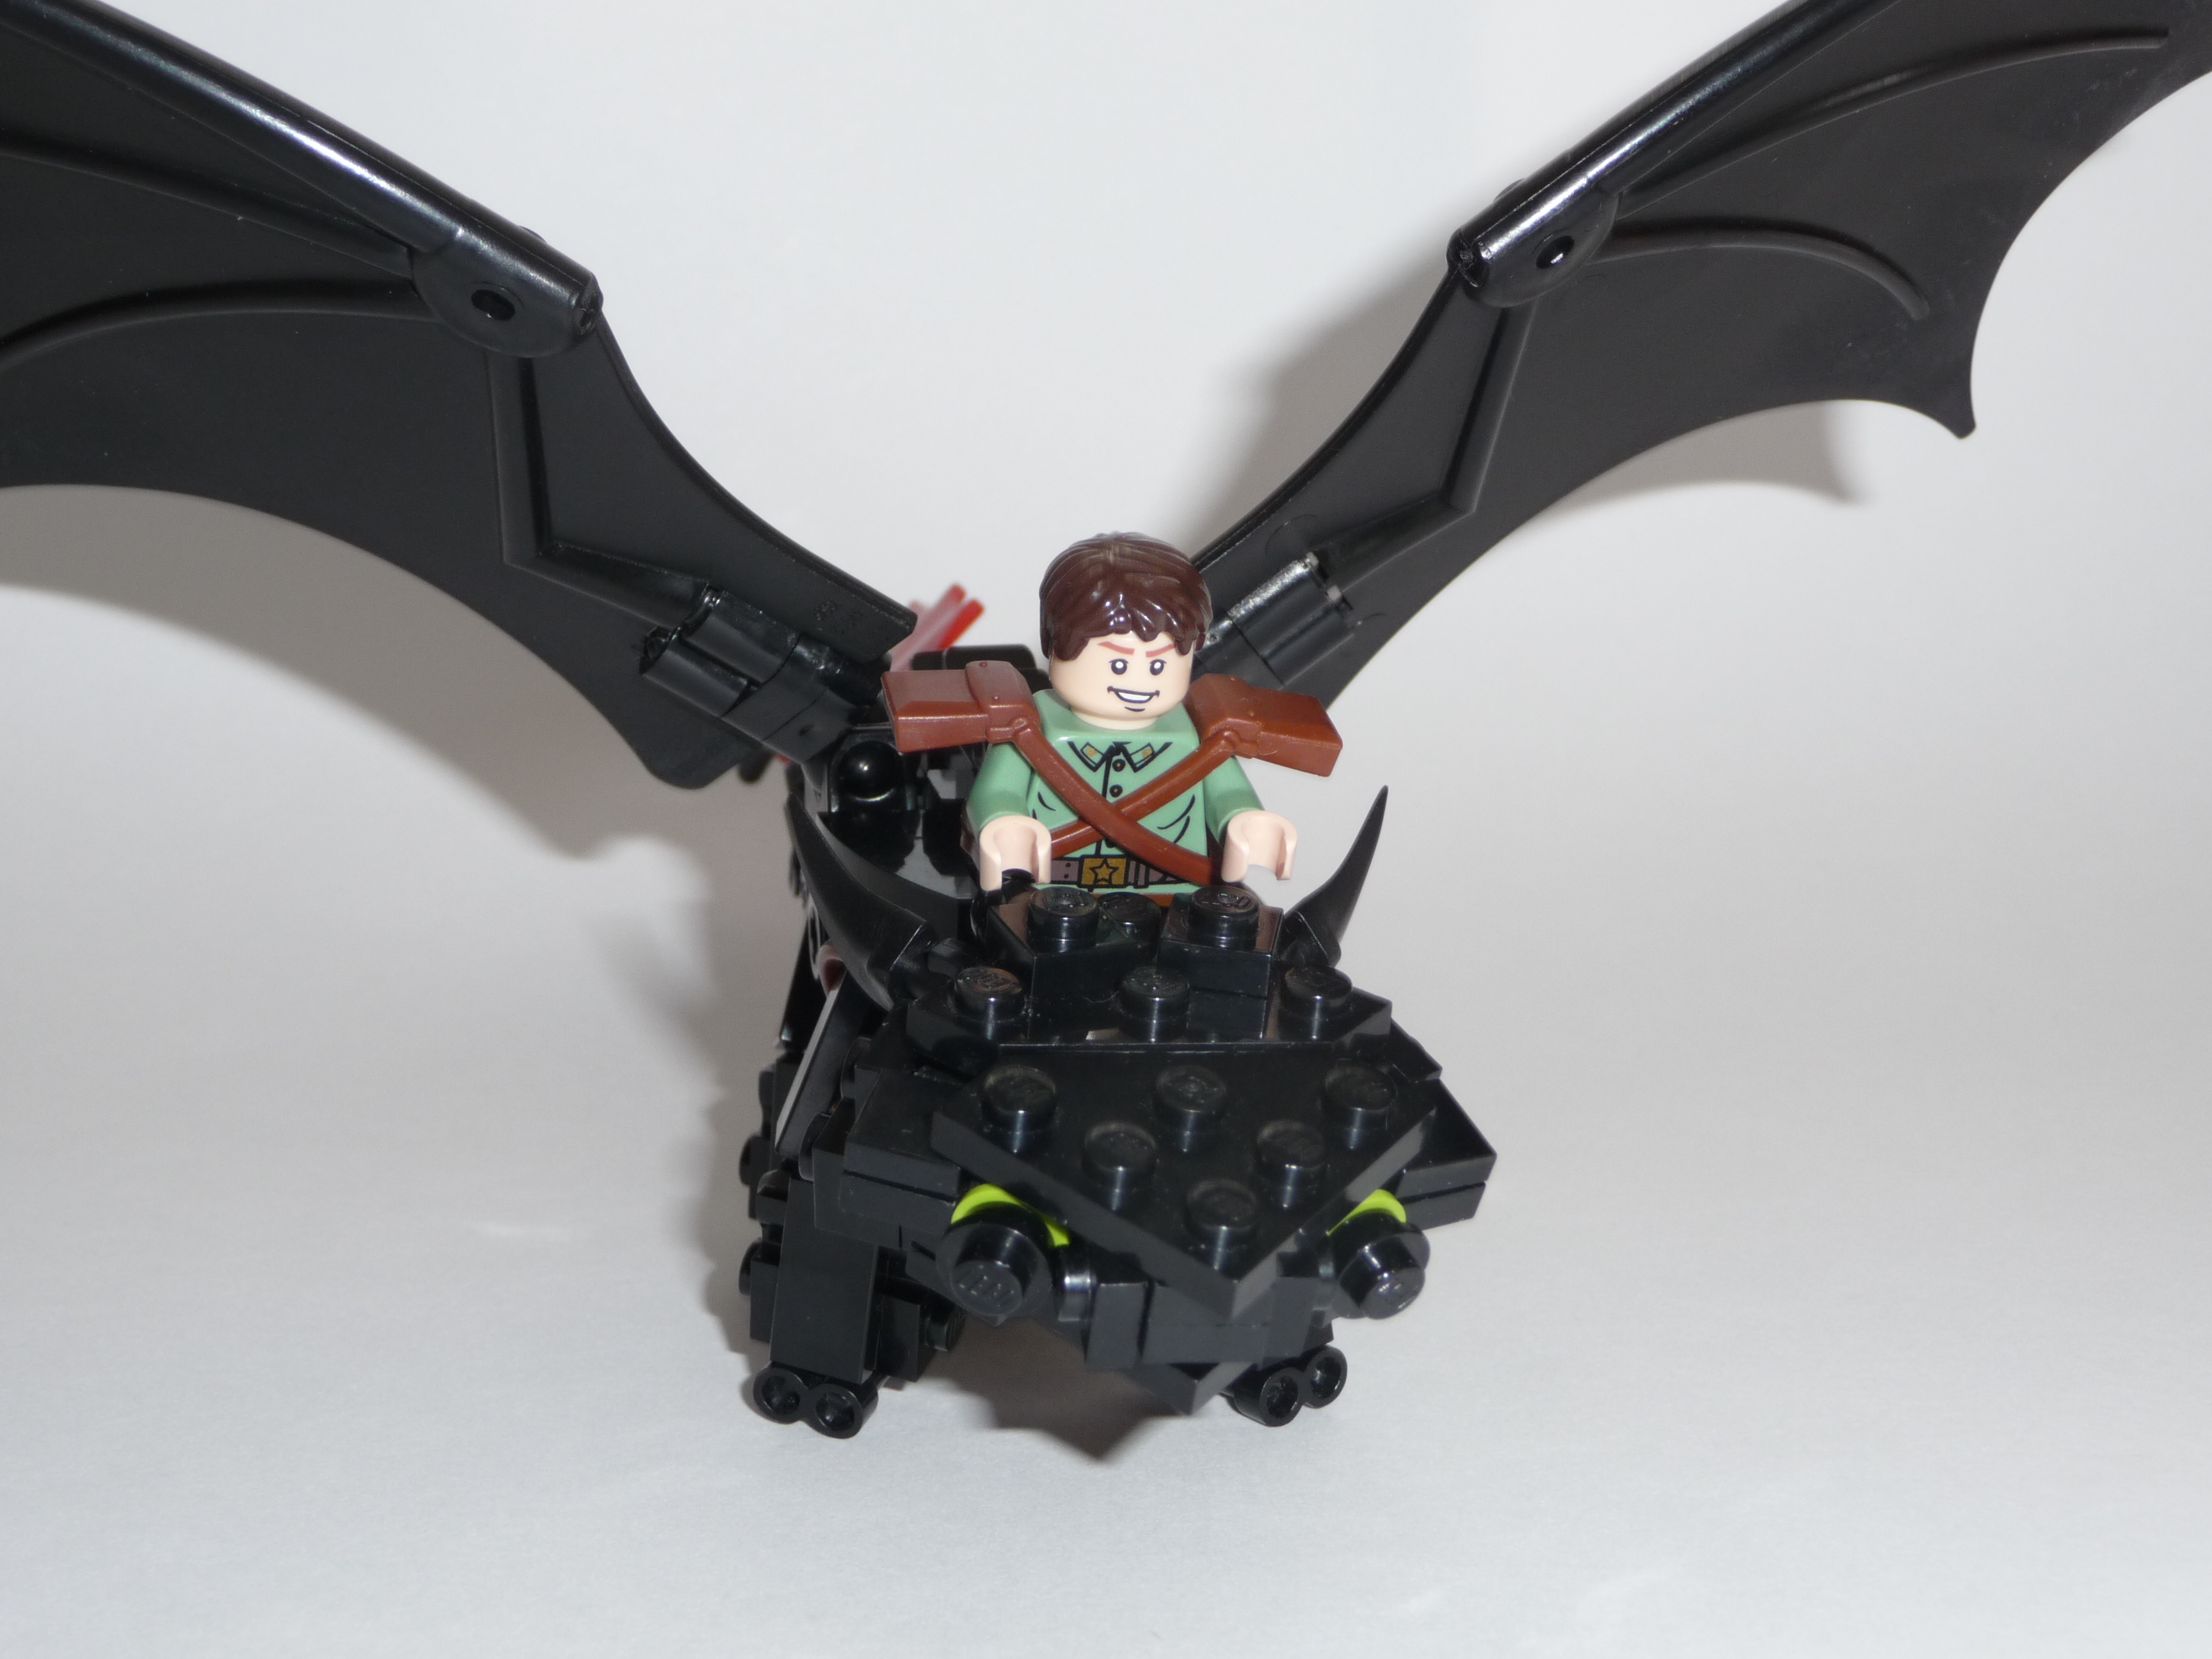 hiccup_and_toothless05.jpg